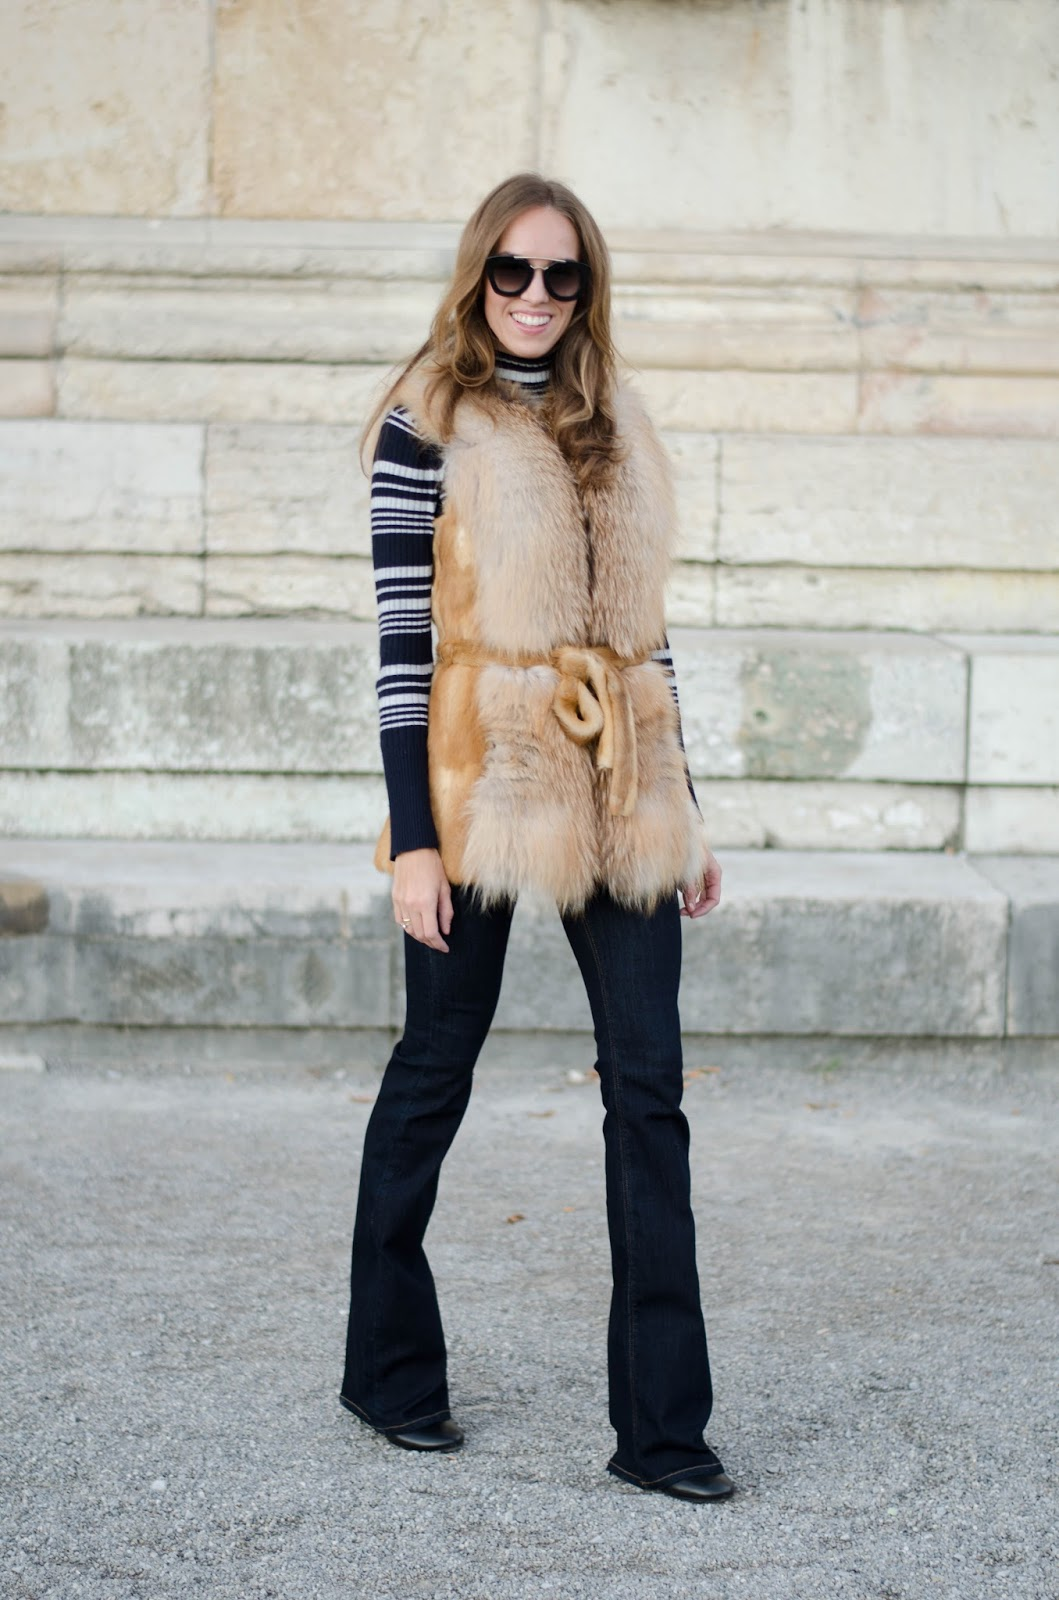 kristjaana mere red fox fur vest striped turtle neck jumper flare jeans fall outfit